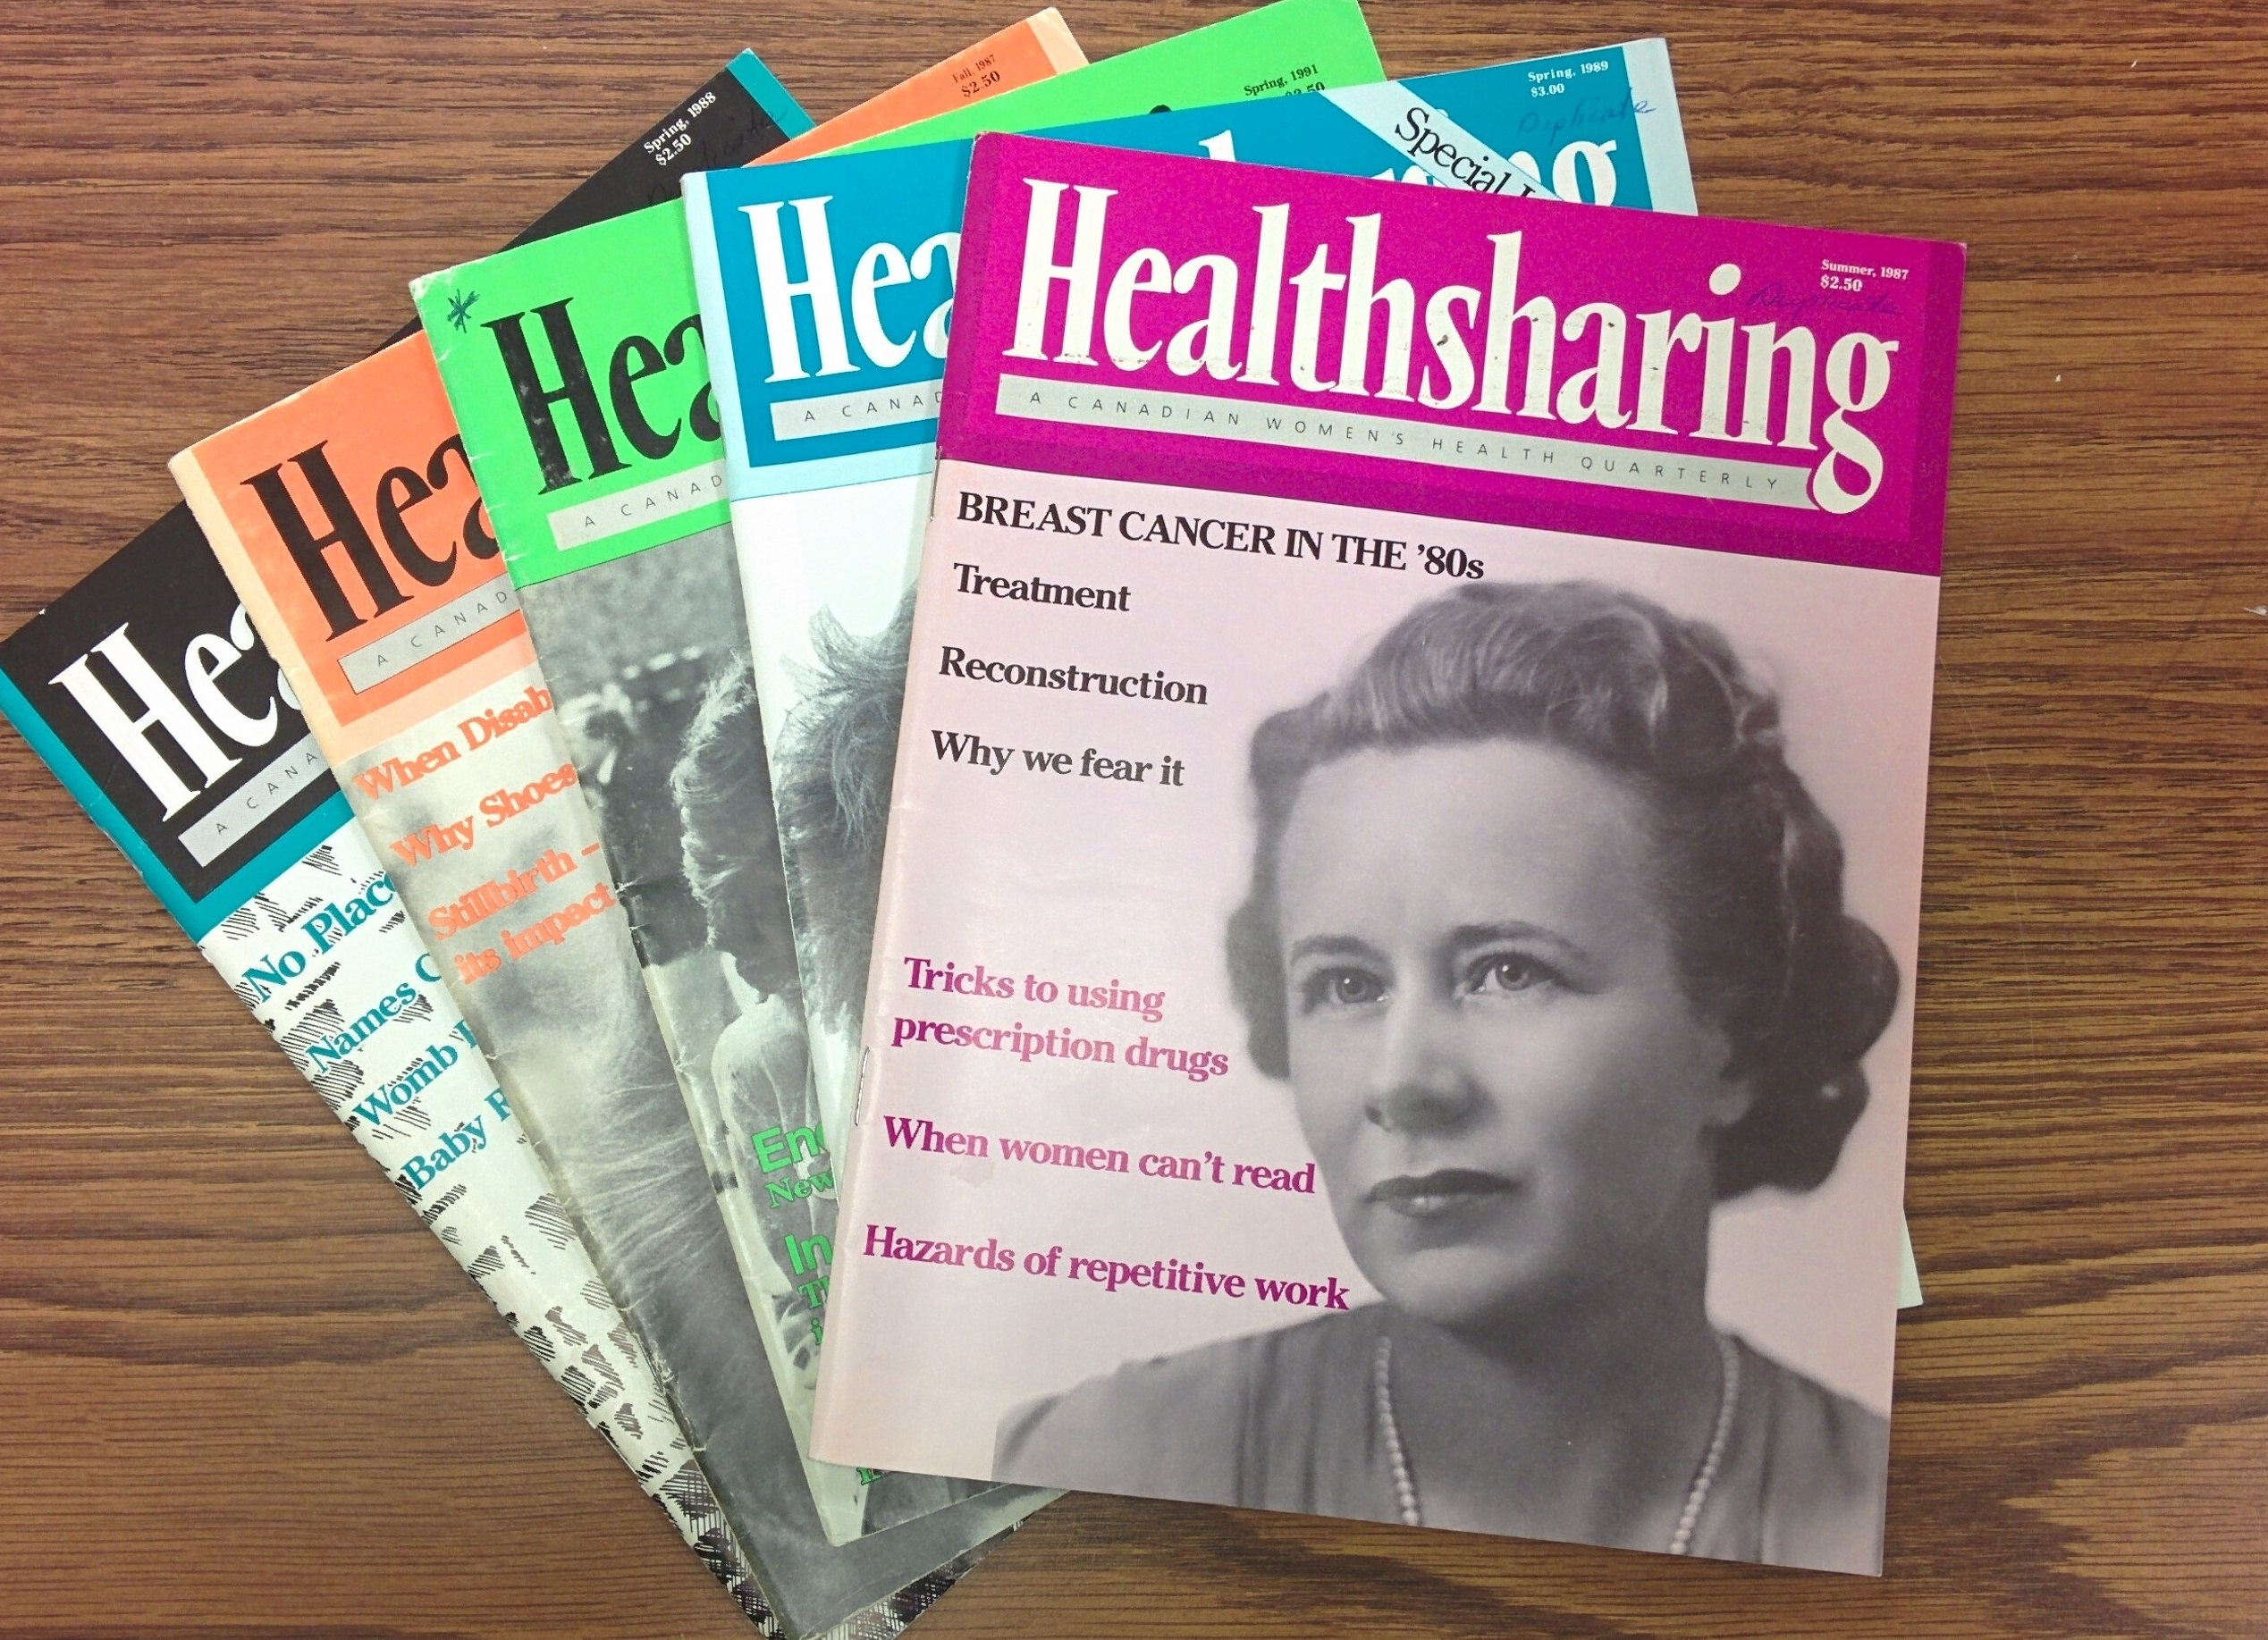 Display of Healthsharing Magazines